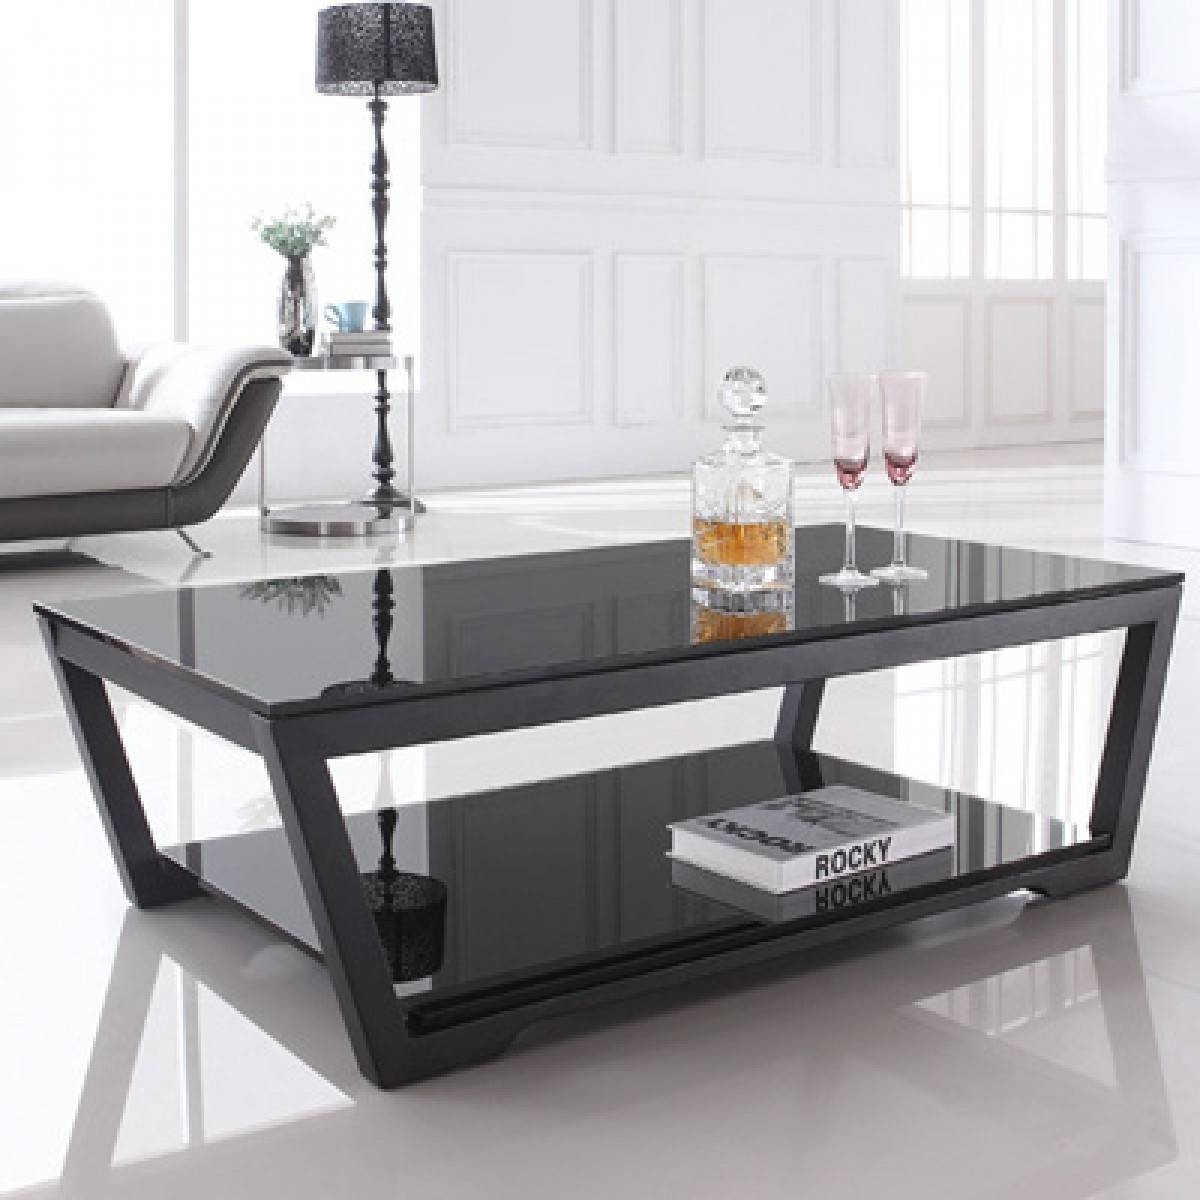 Coffee Tables. Awesome Contemporary Glass Coffee Tables Designs intended for Black Wood and Glass Coffee Tables (Image 9 of 30)